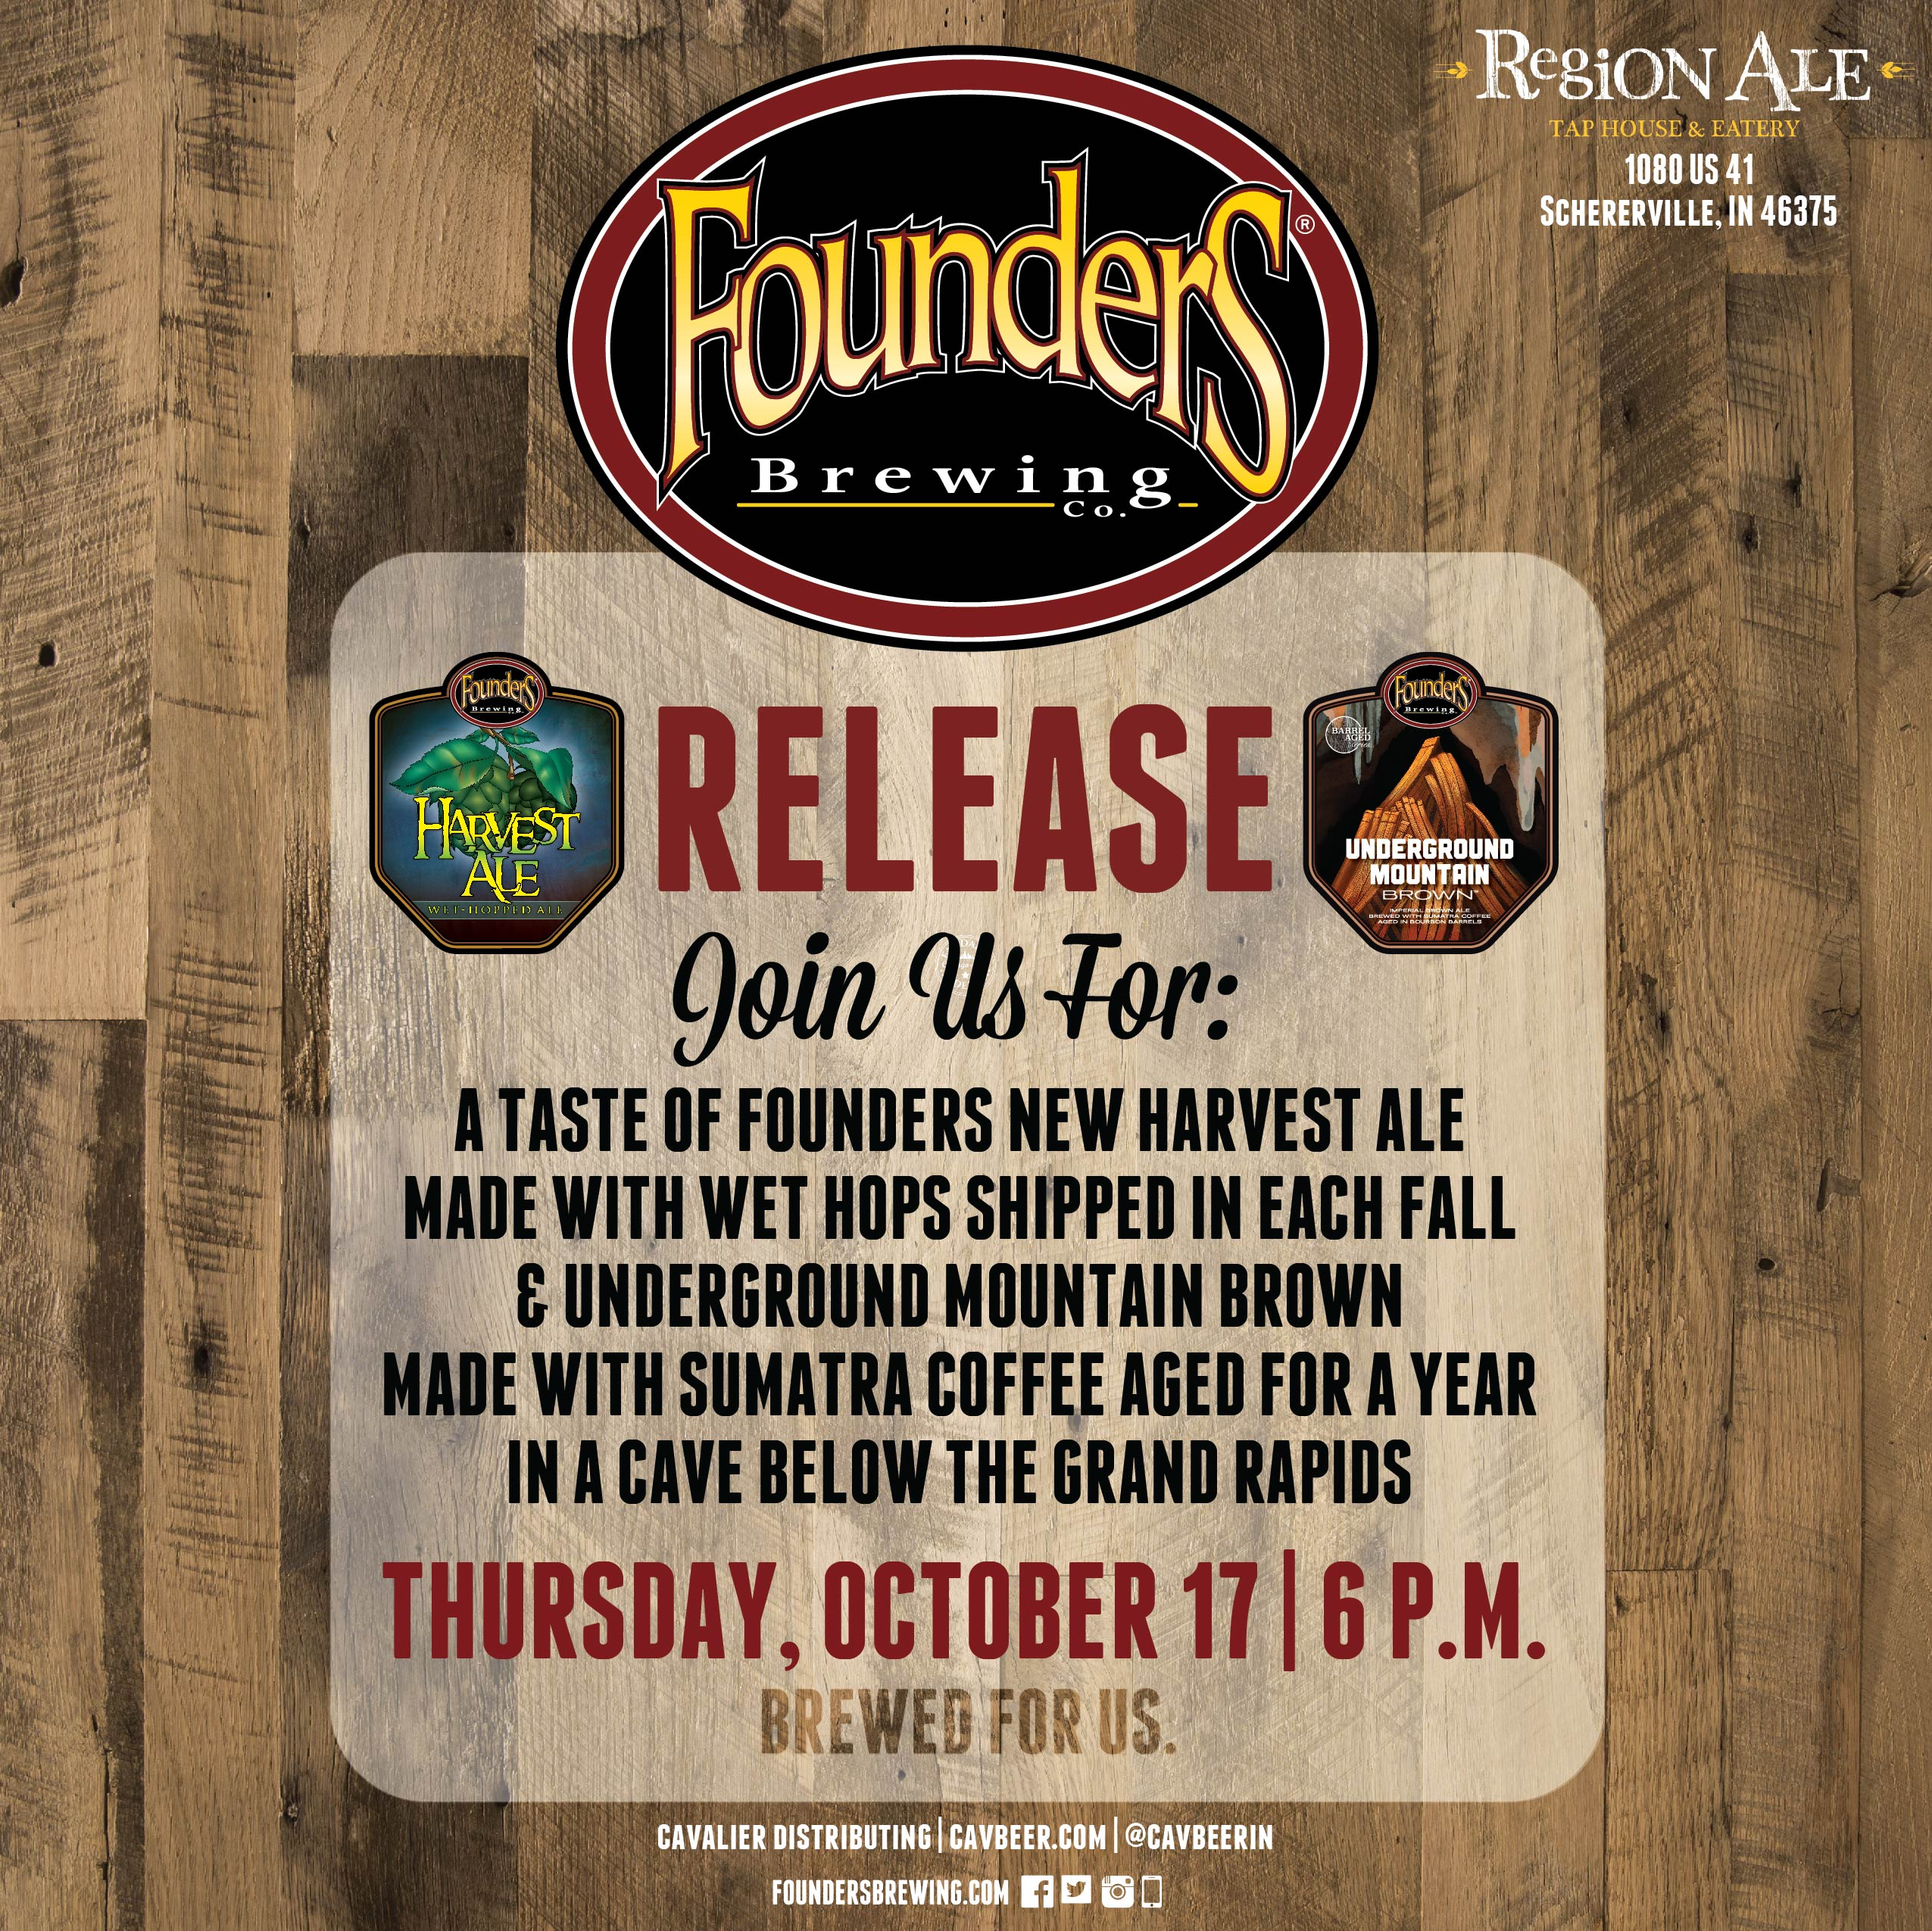 Founders Release @ Region Ale Taphouse & Eatery